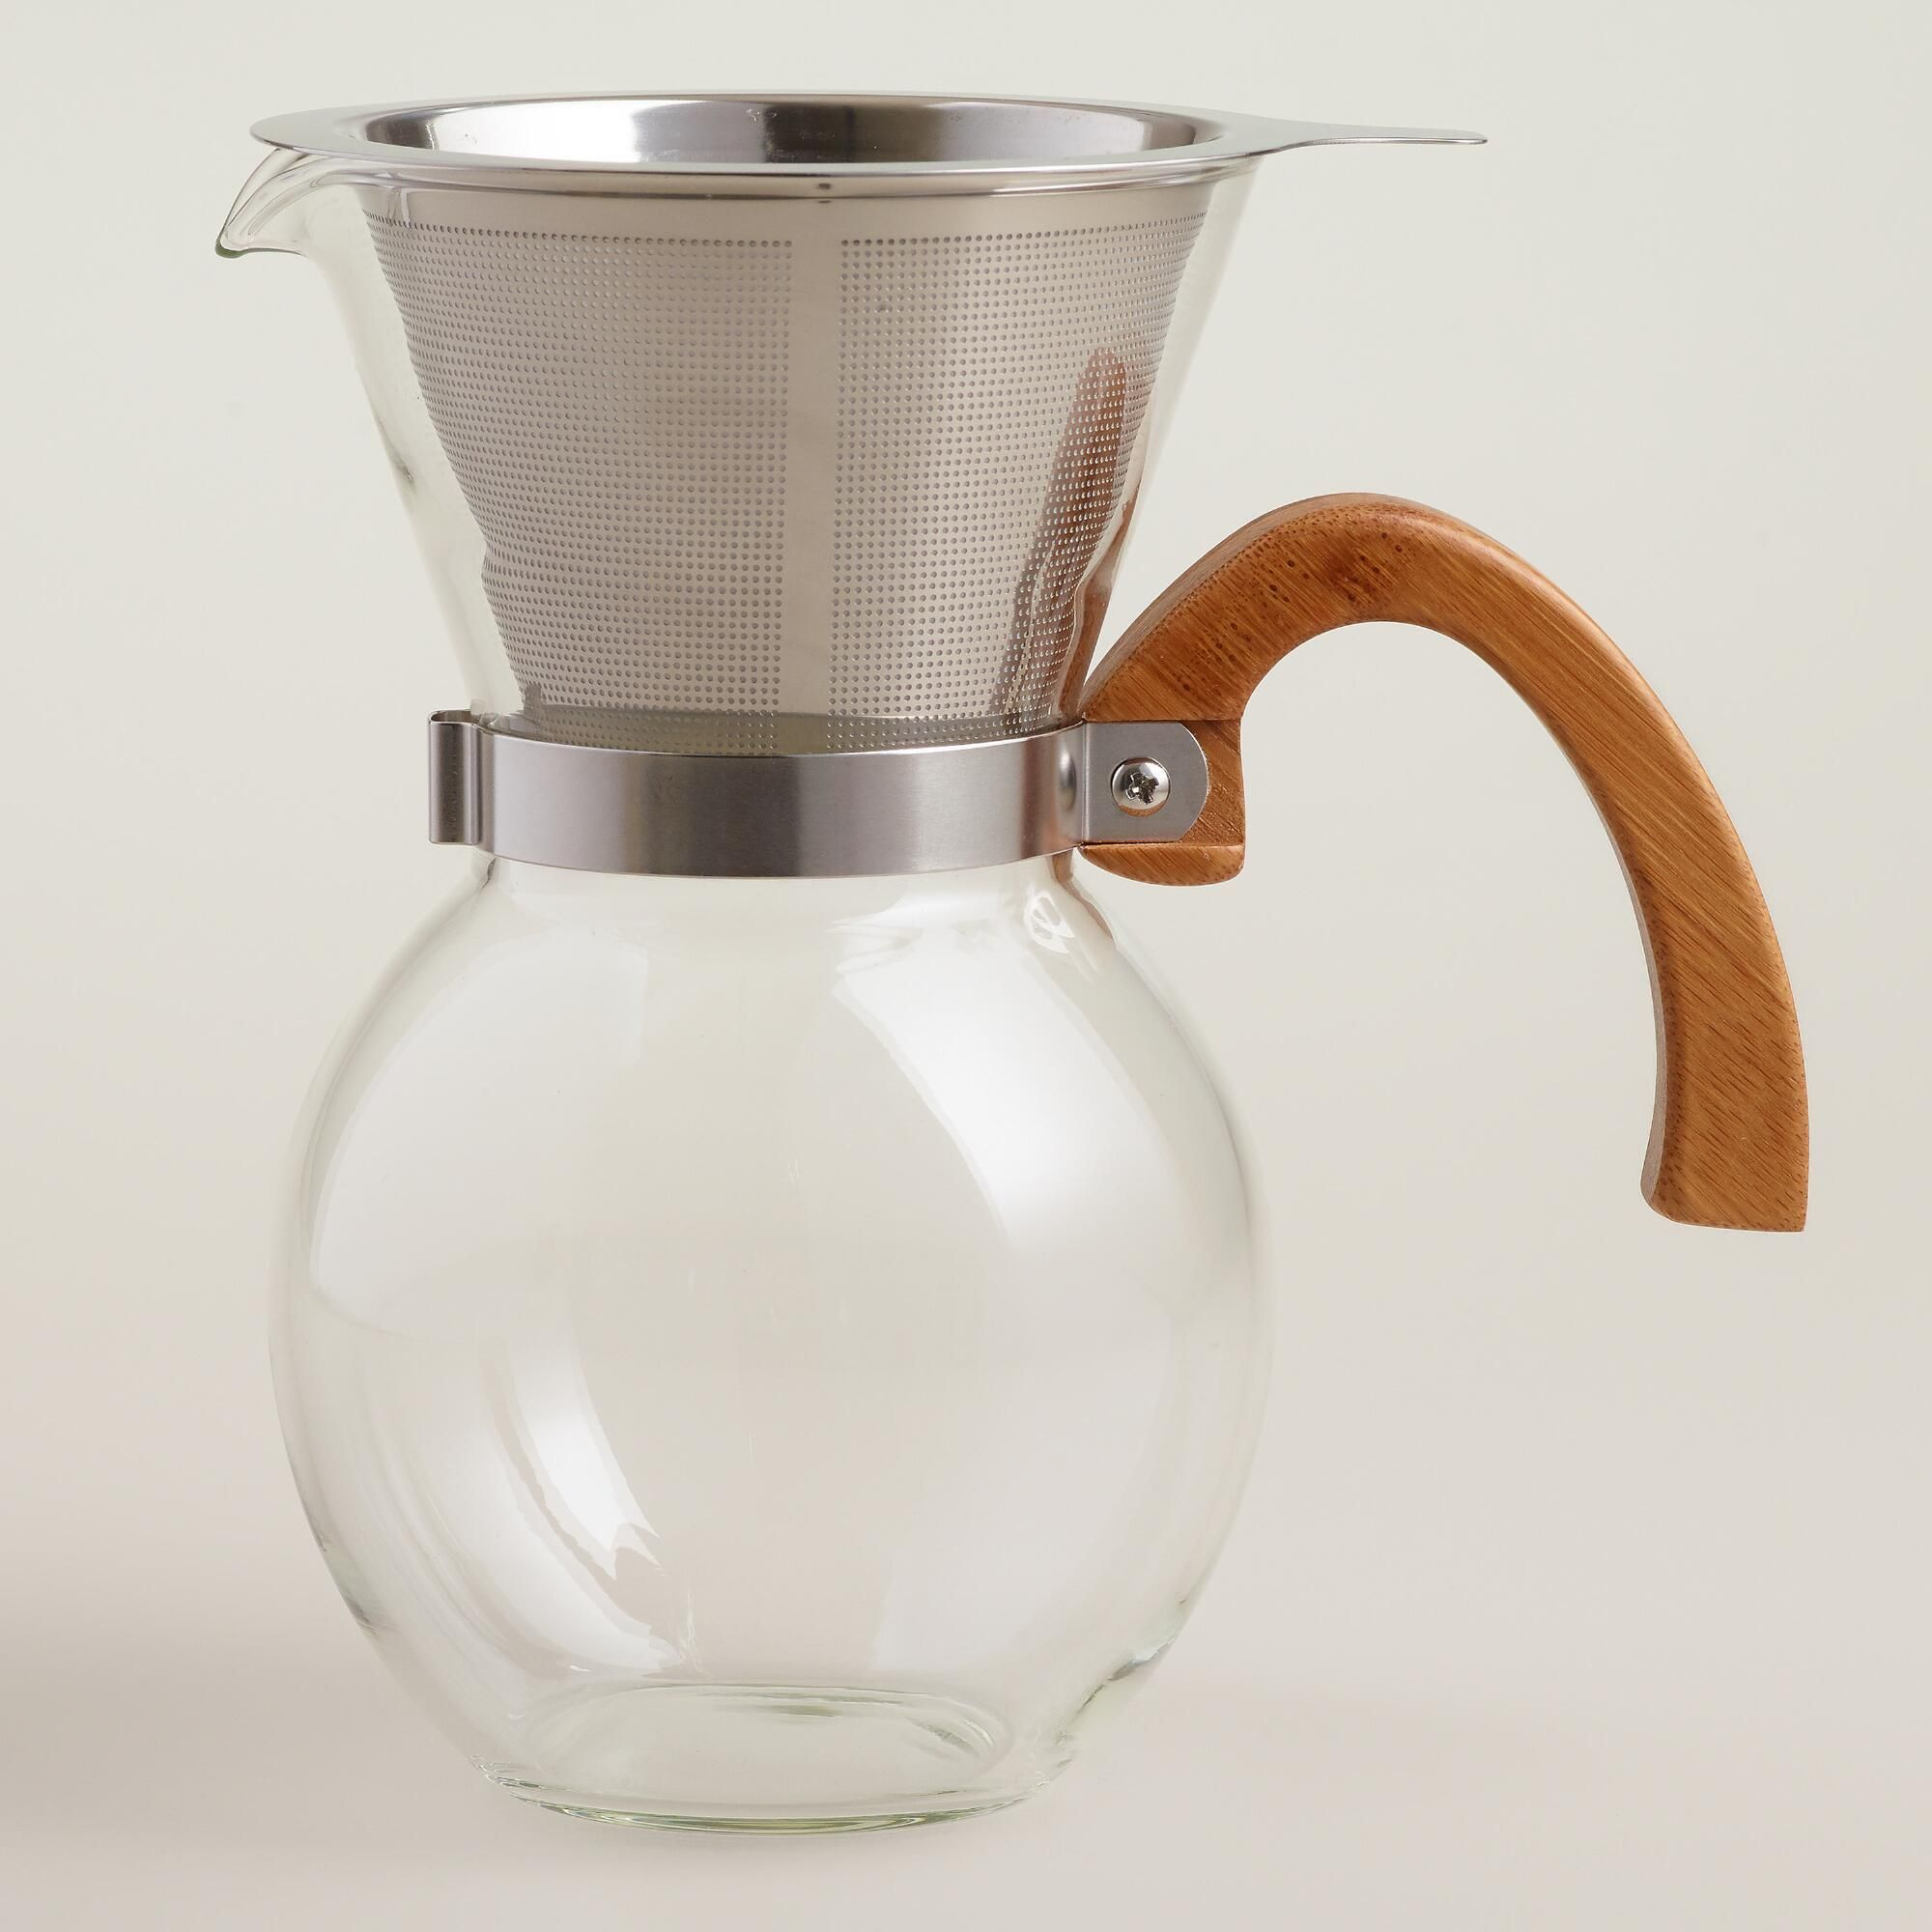 Make delicious slow brew coffee and serve it immediately with our